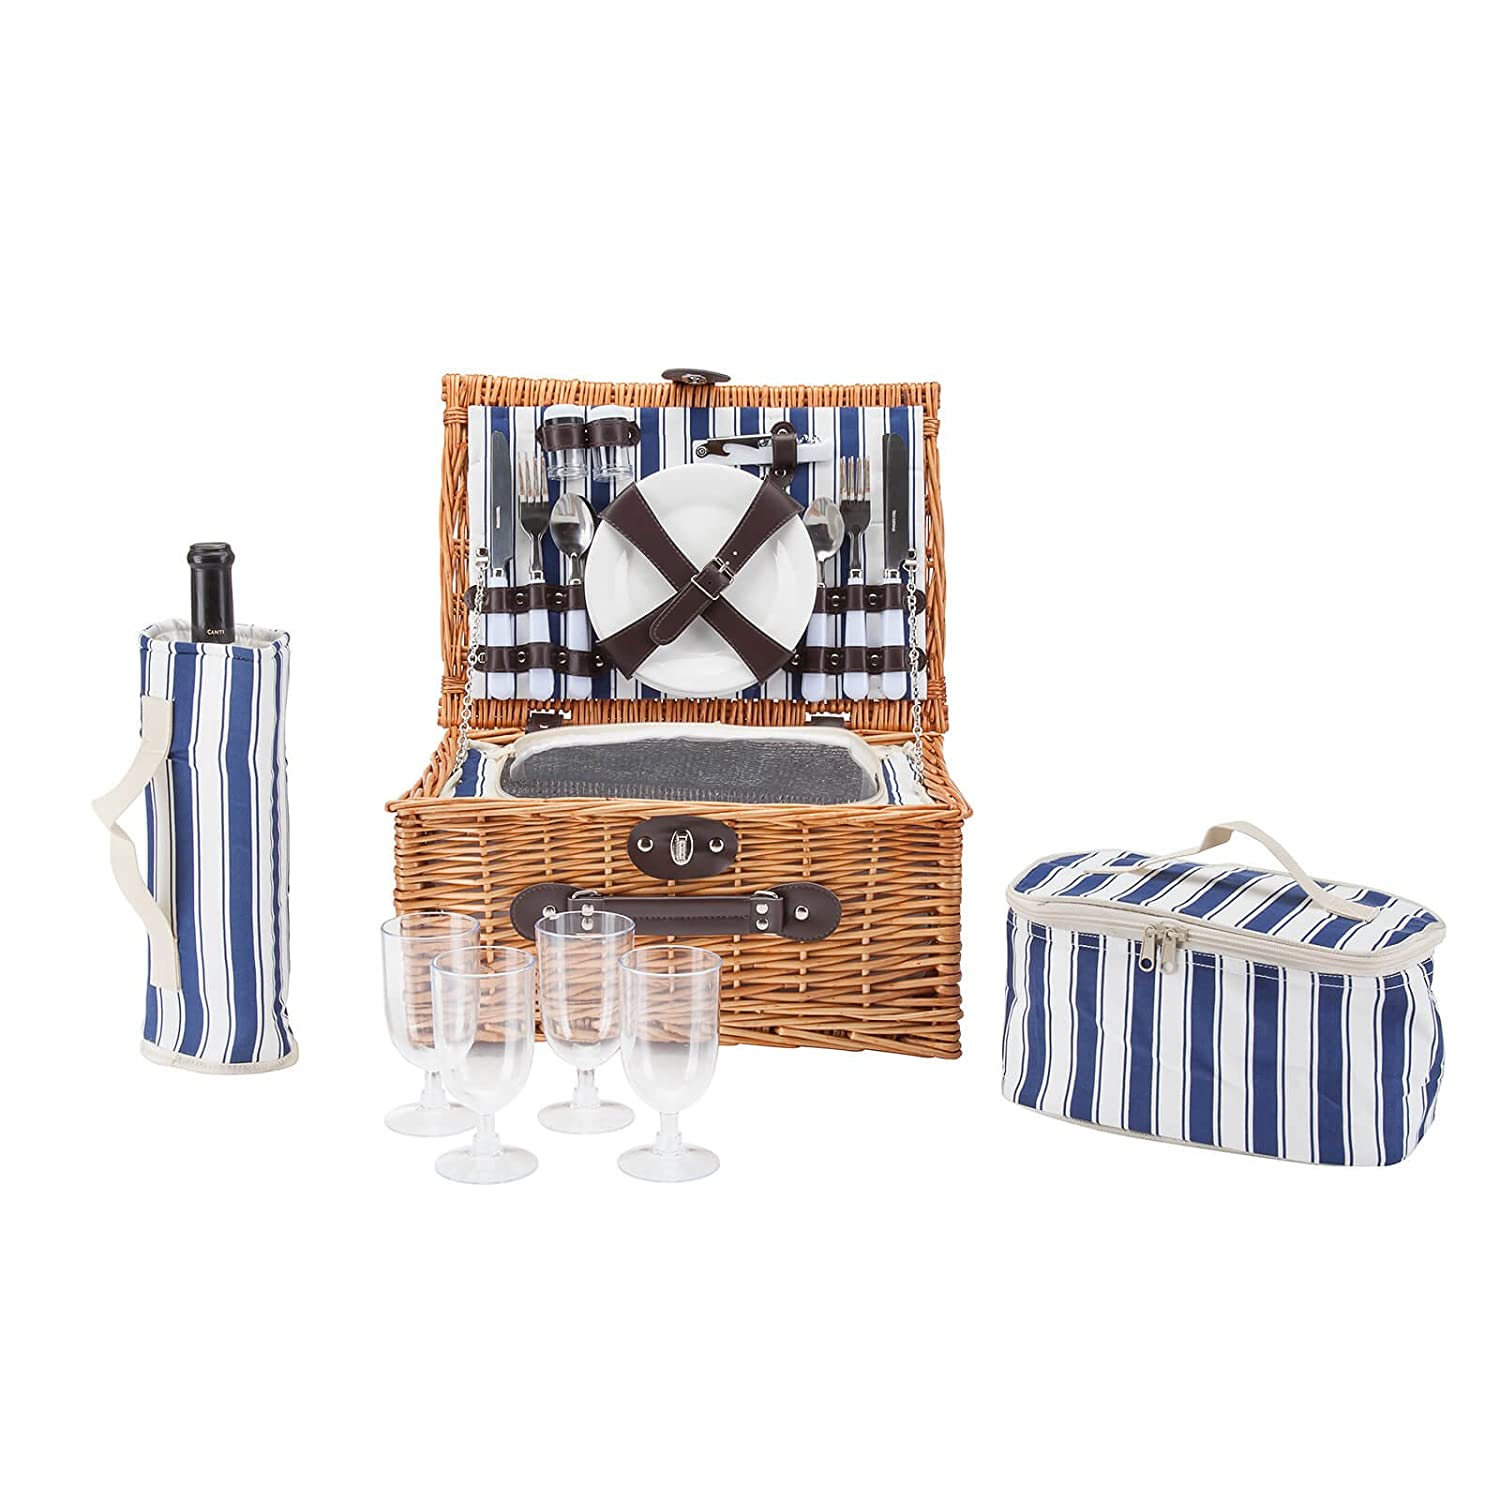 Alfresia 4 Person Picnic Basket insulated Set - Wicker Willow Outdoor Hamper